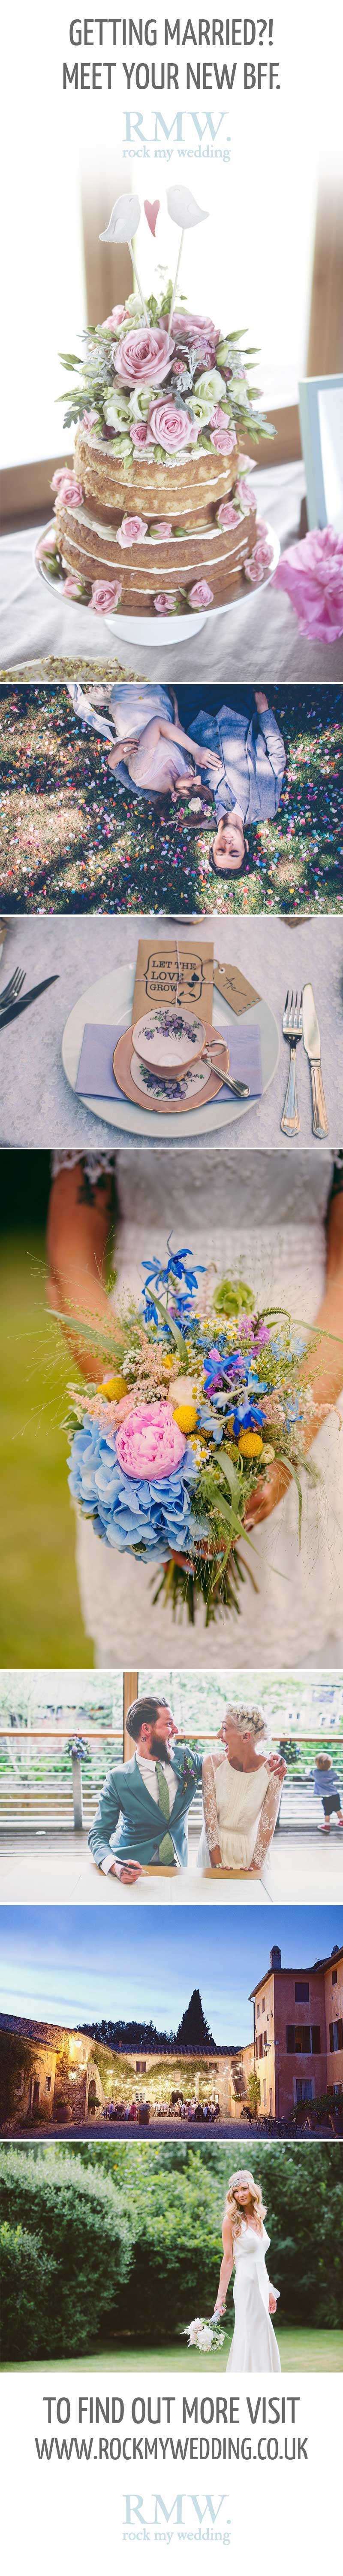 The-best-wedding-blog-for-unique-ideas-beautiful-flowers-and-style